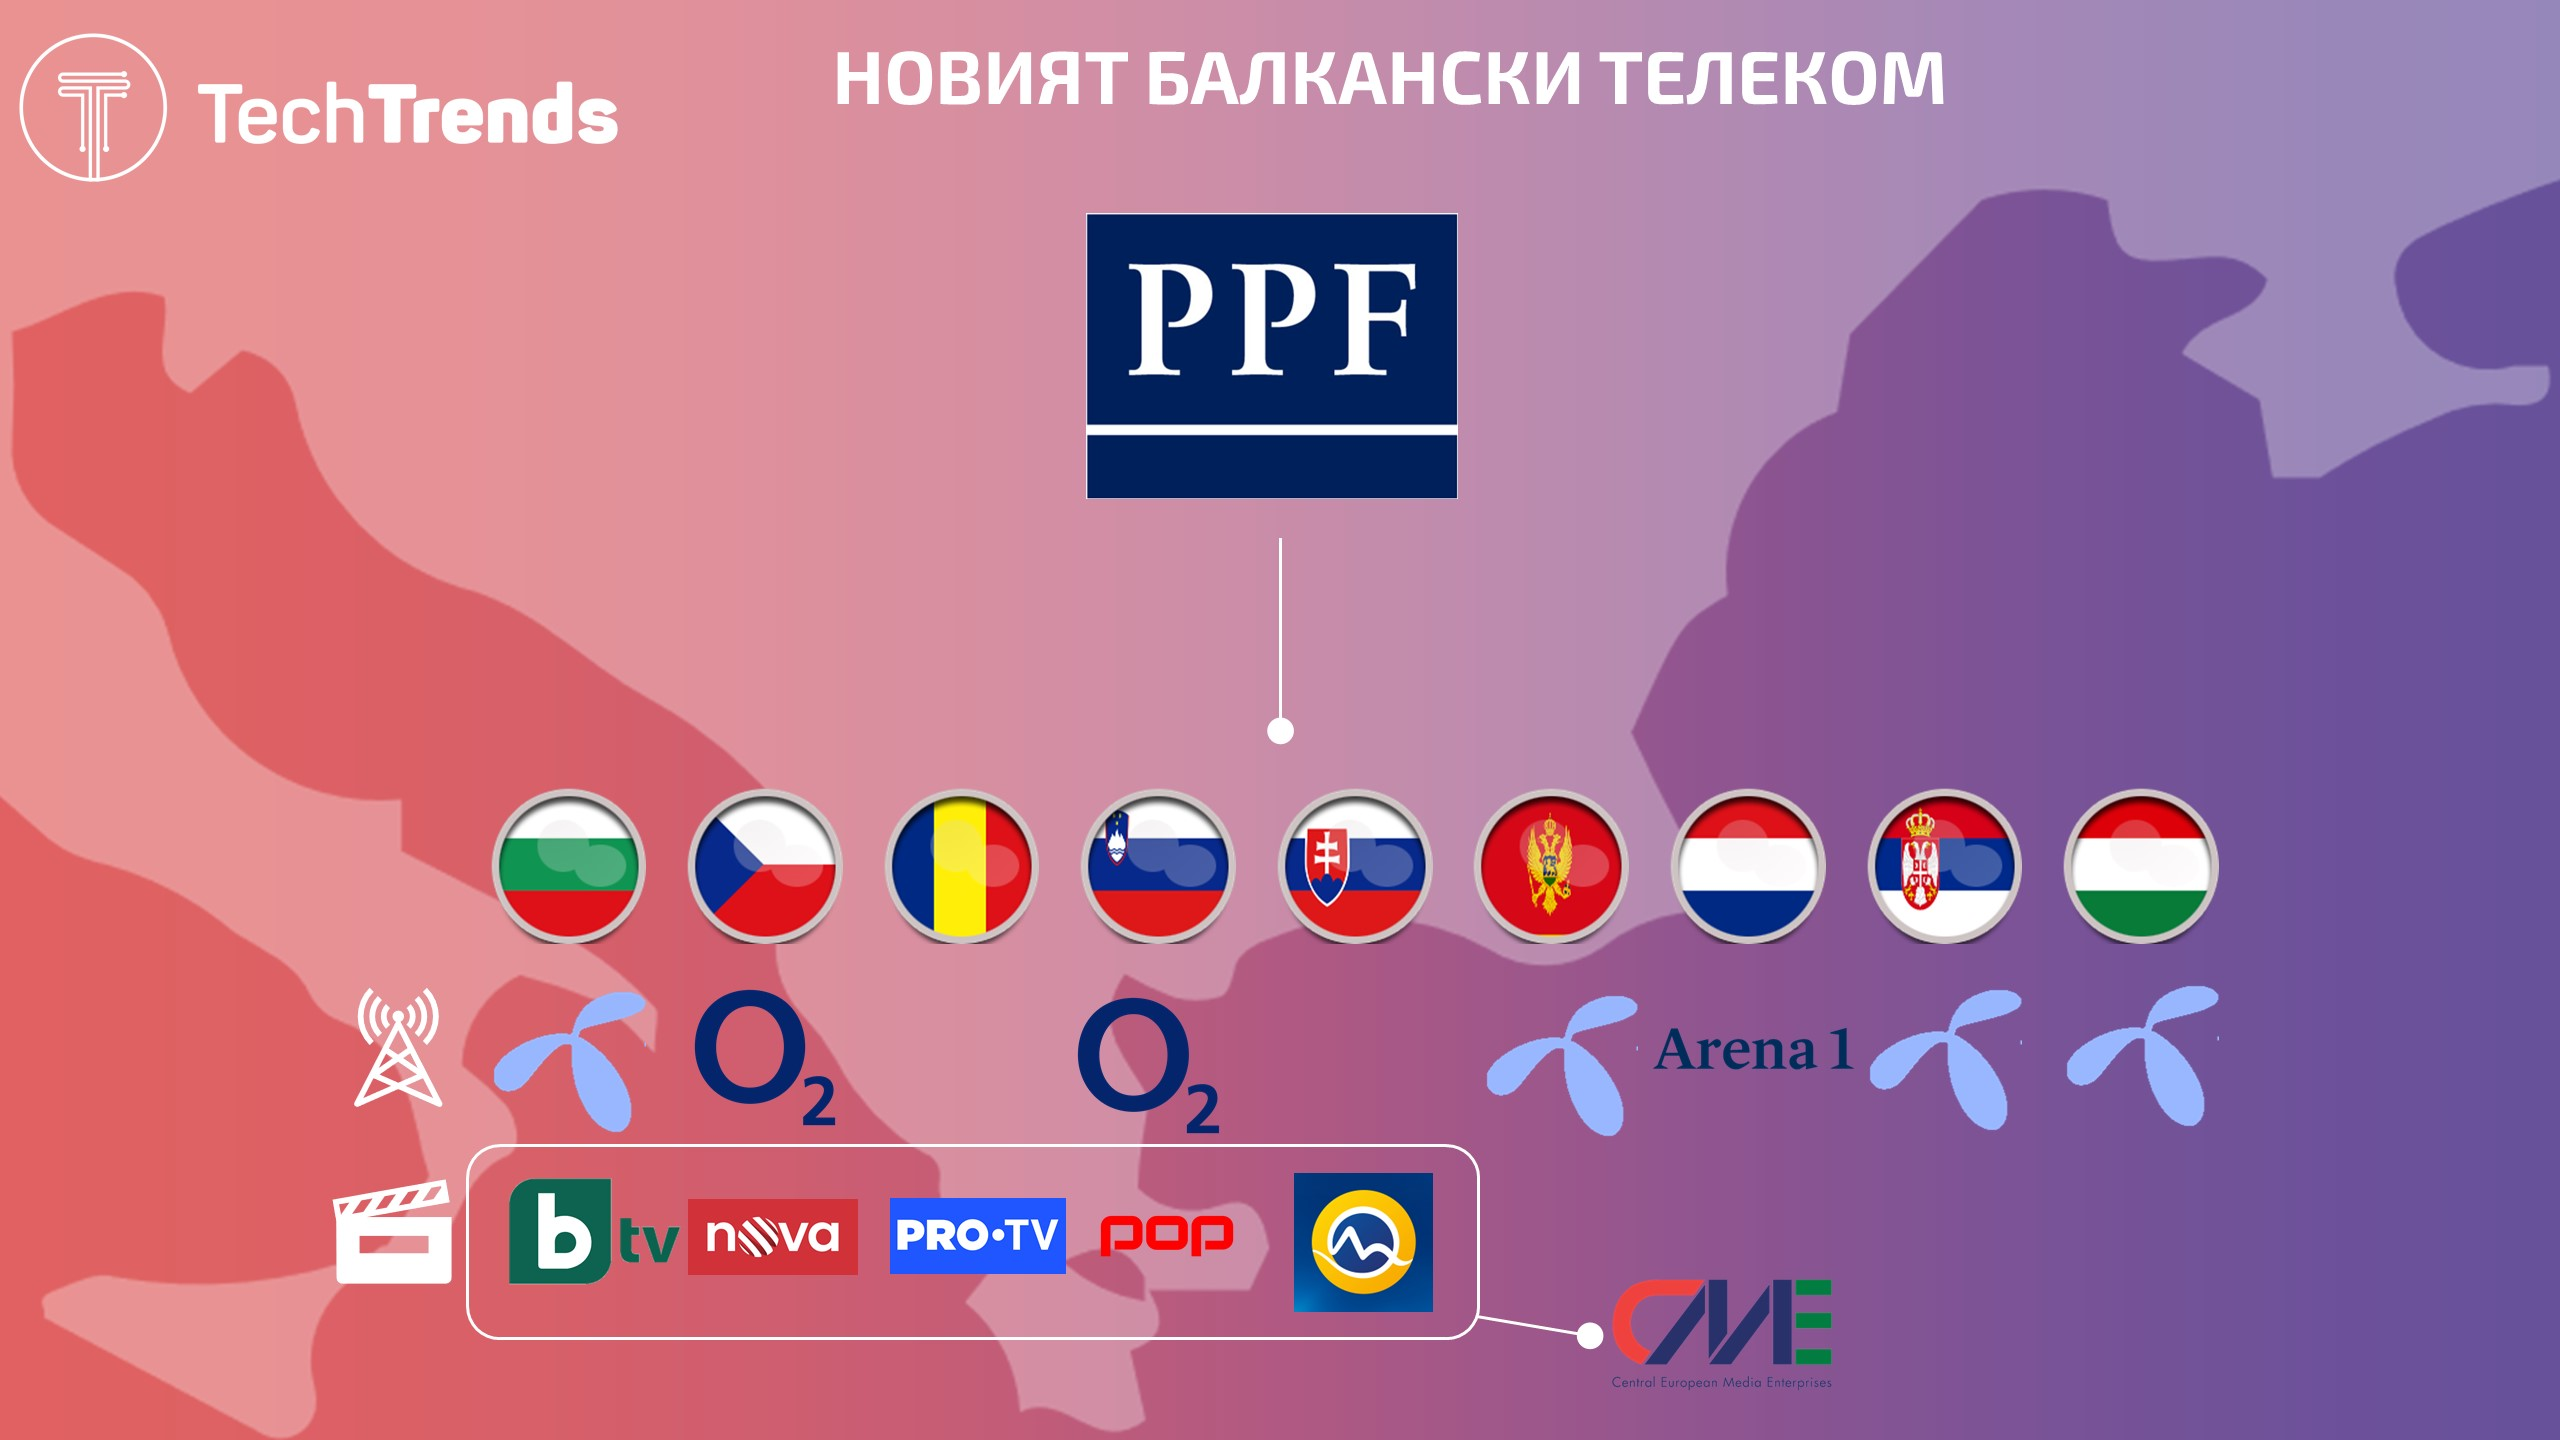 PPF Group CEE Assets